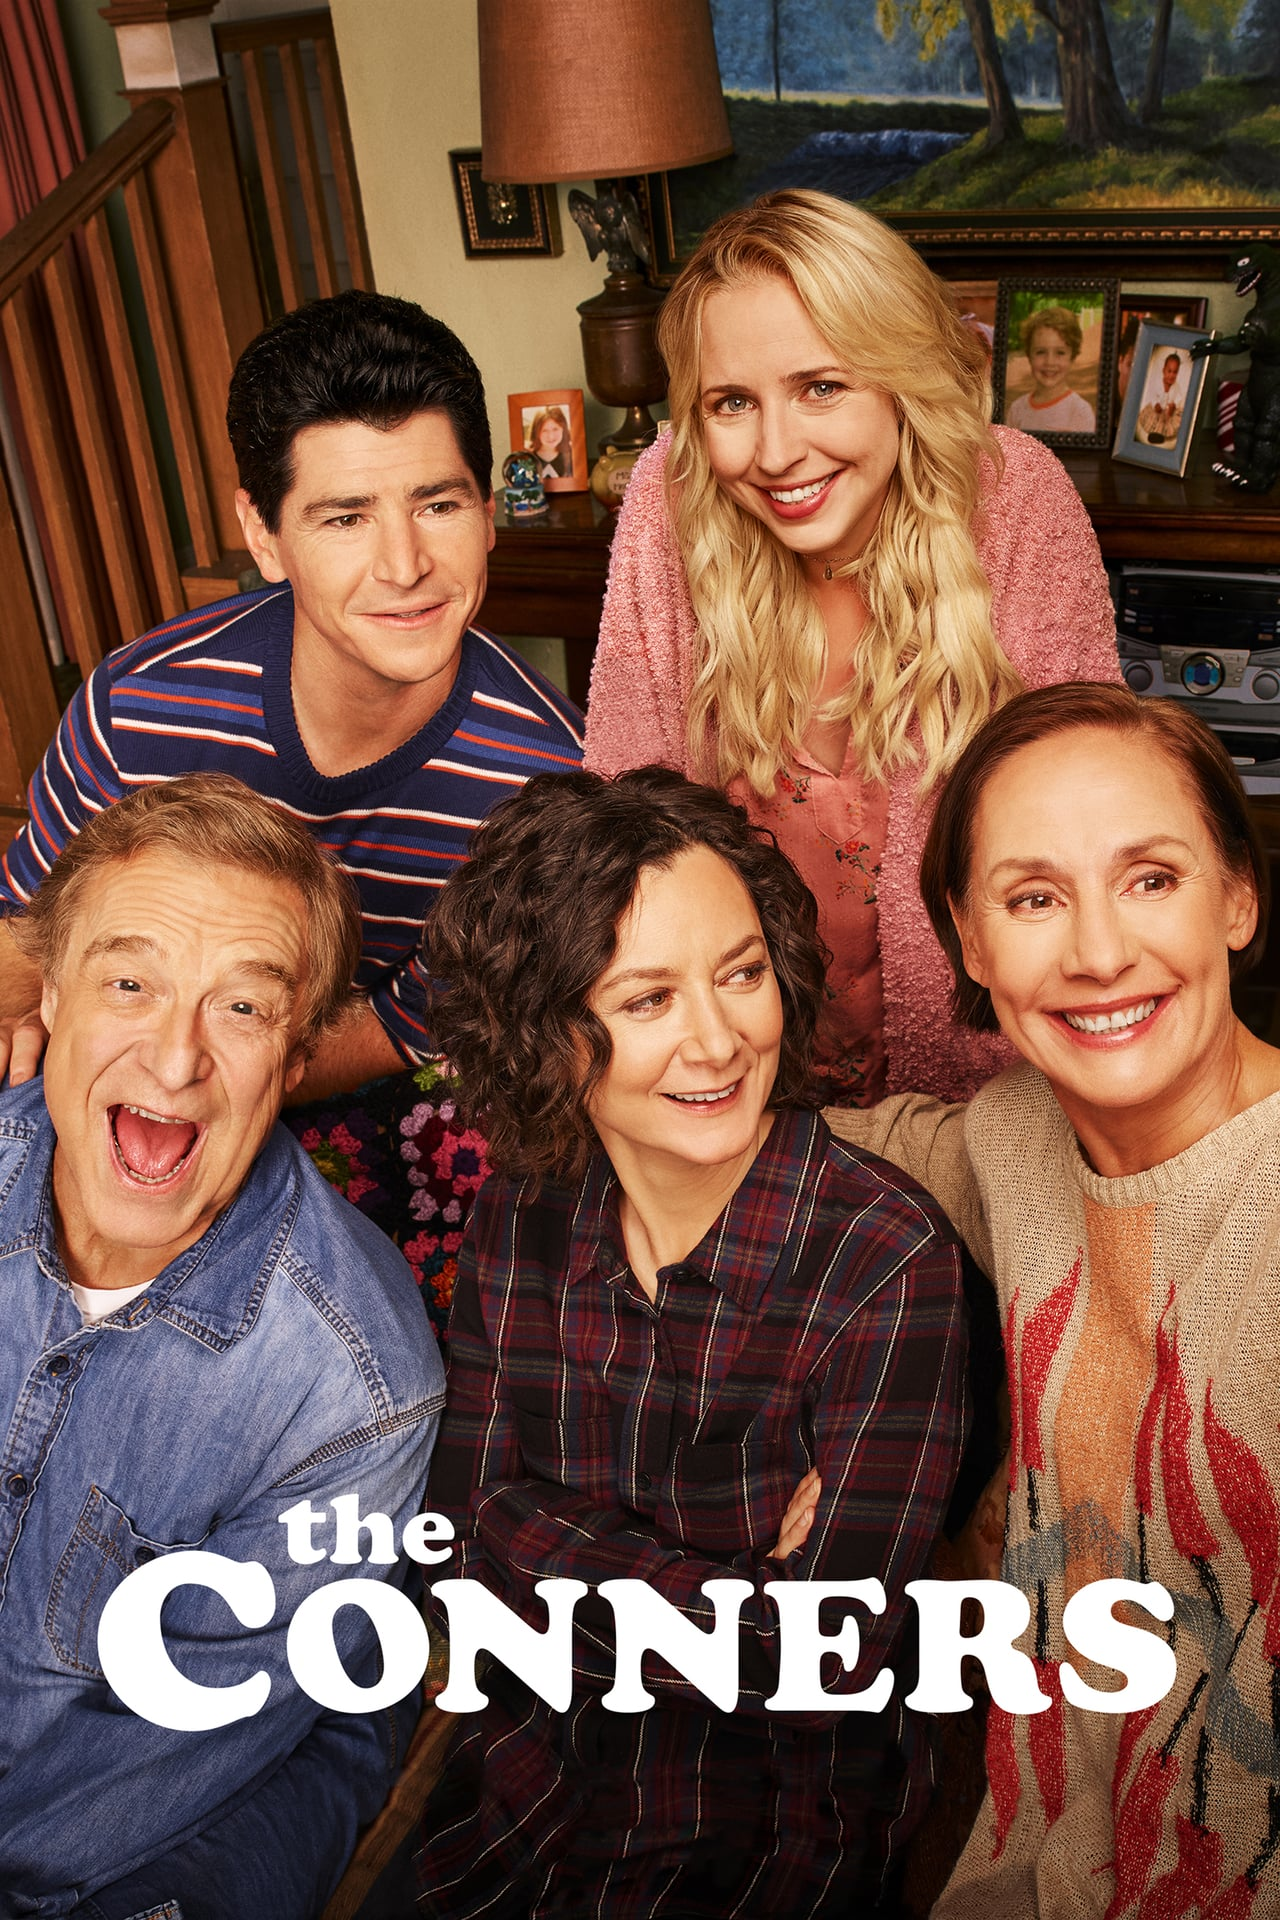 The Conners (season 3)